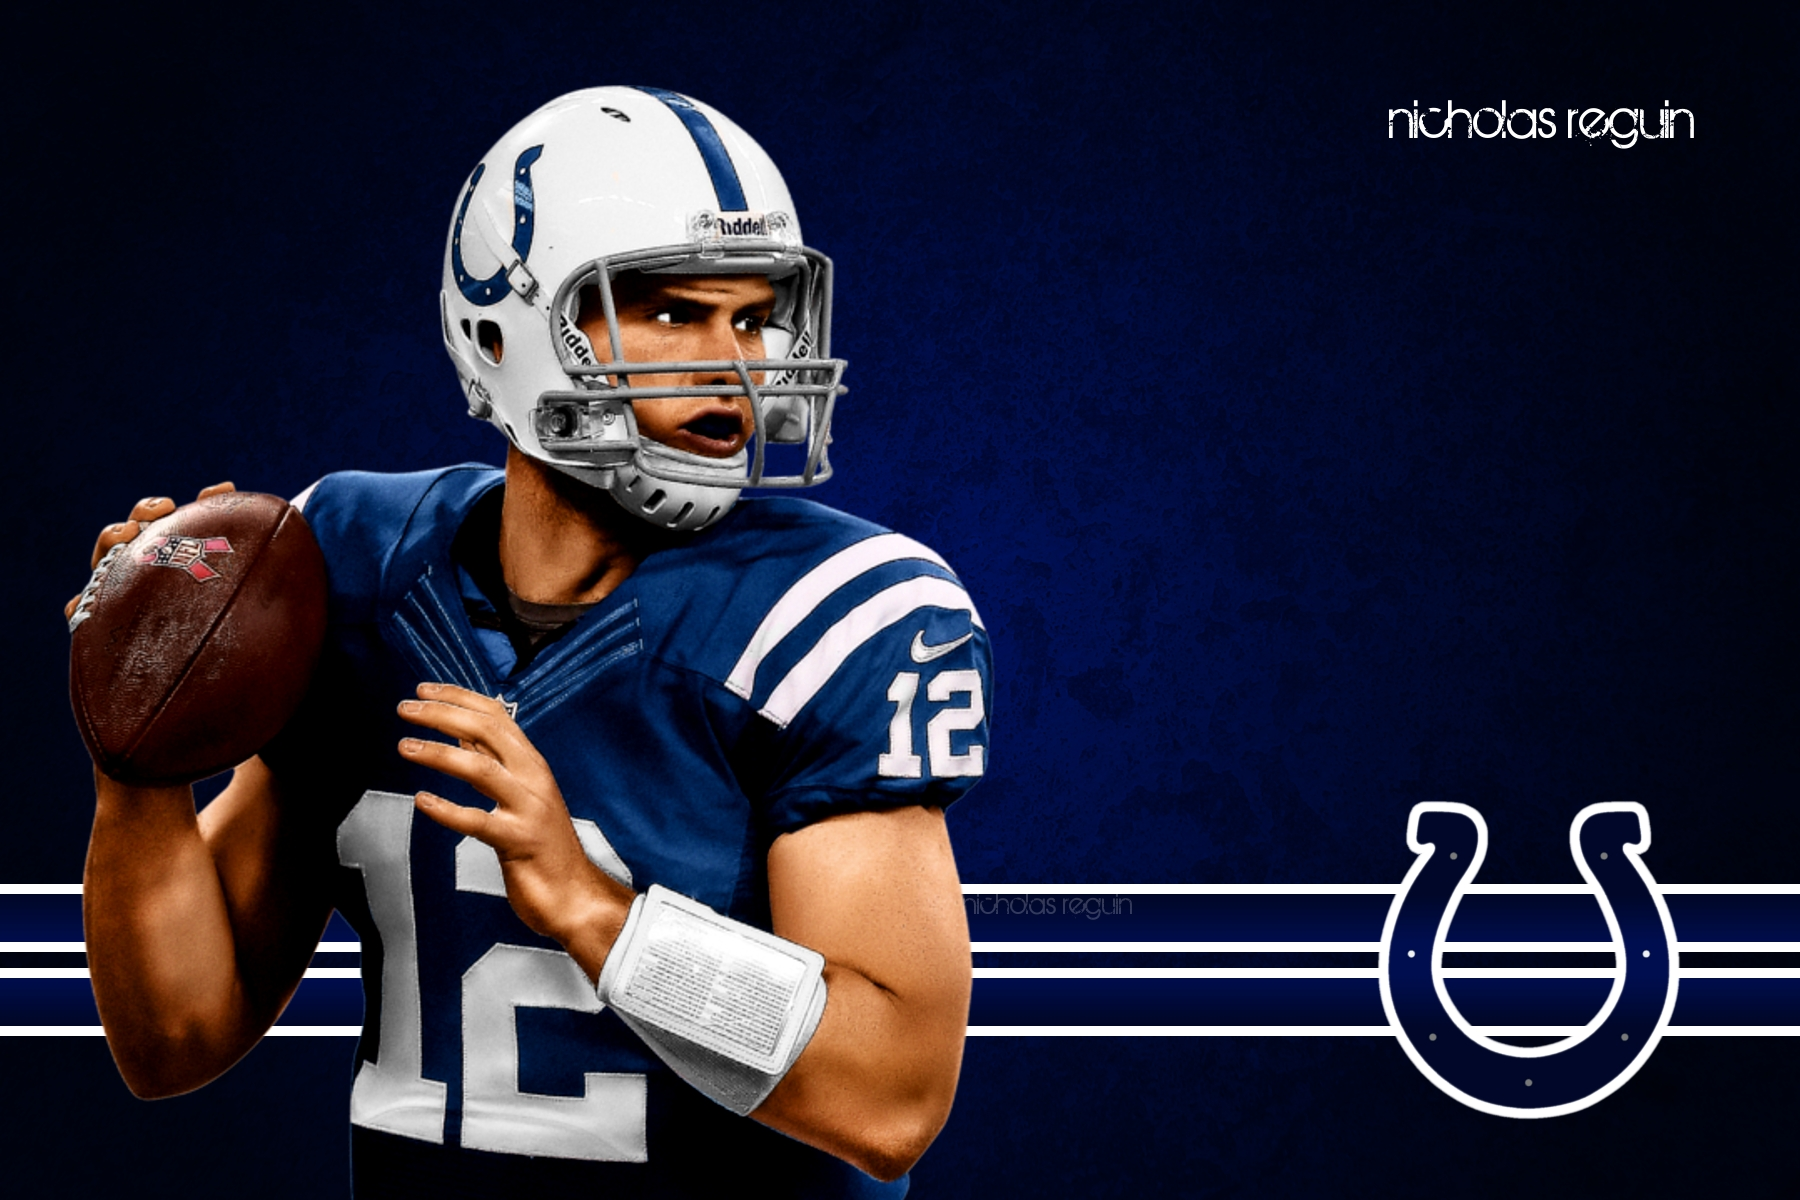 INDIANAPOLIS COLTS Nfl Football Wallpaper 1800X1200 1800x1200